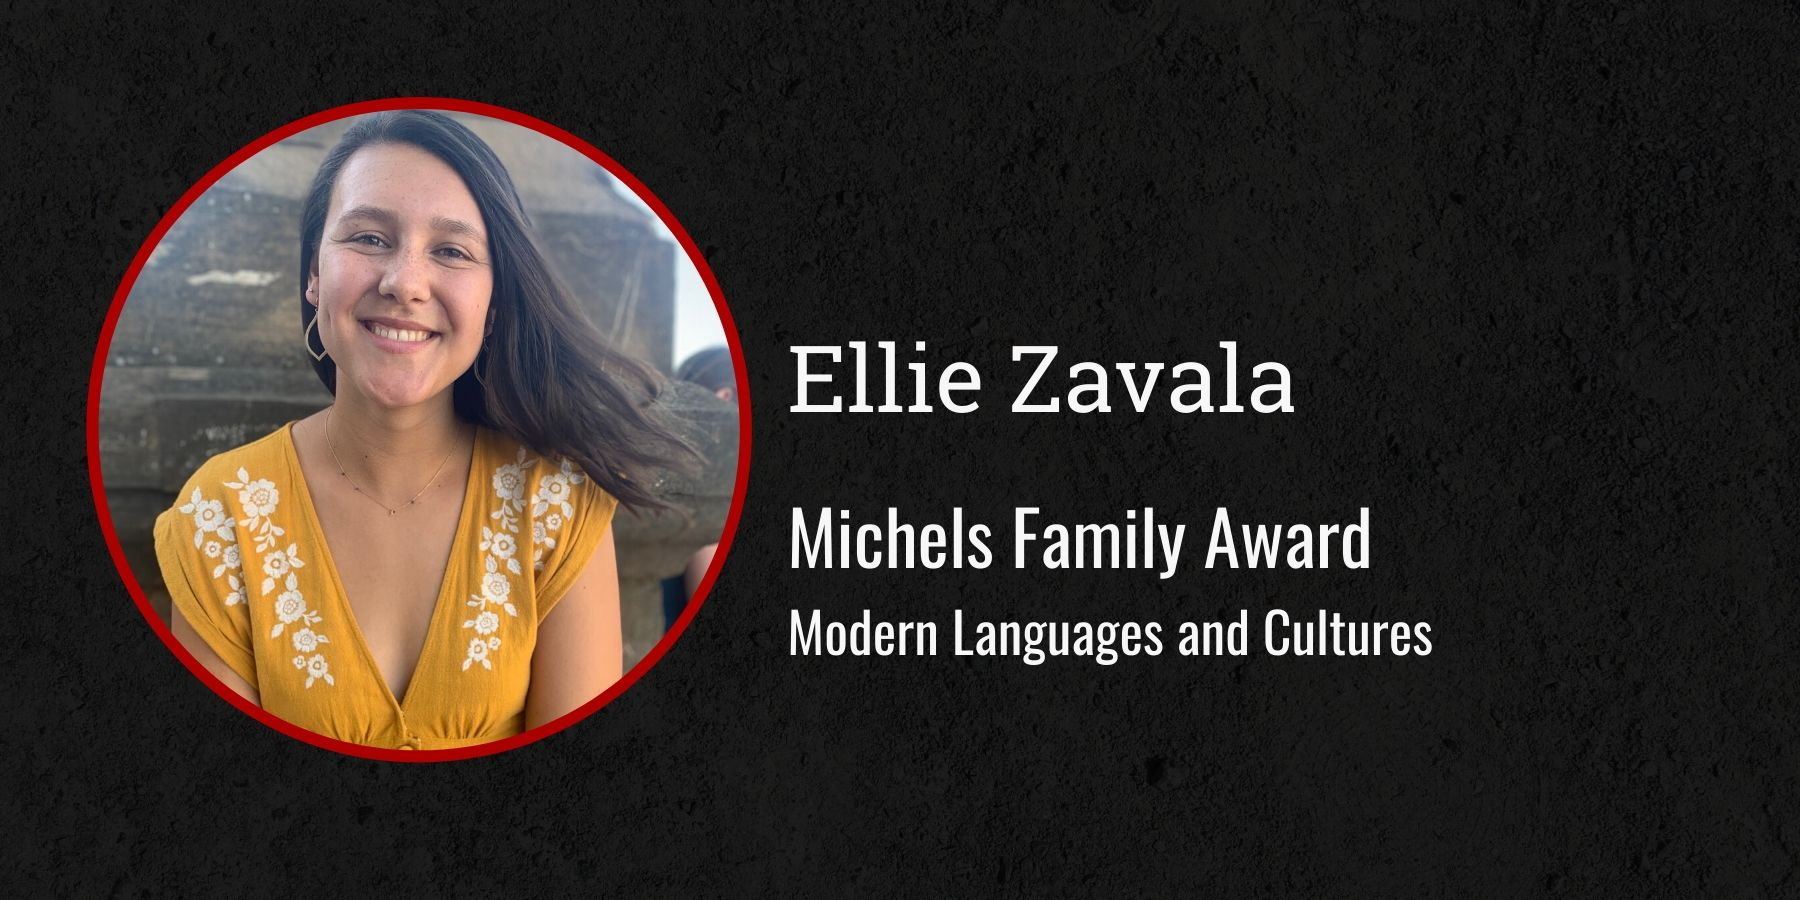 Photo of Ellie Zavala and text Michels Family Award, Modern Languages and Cultures